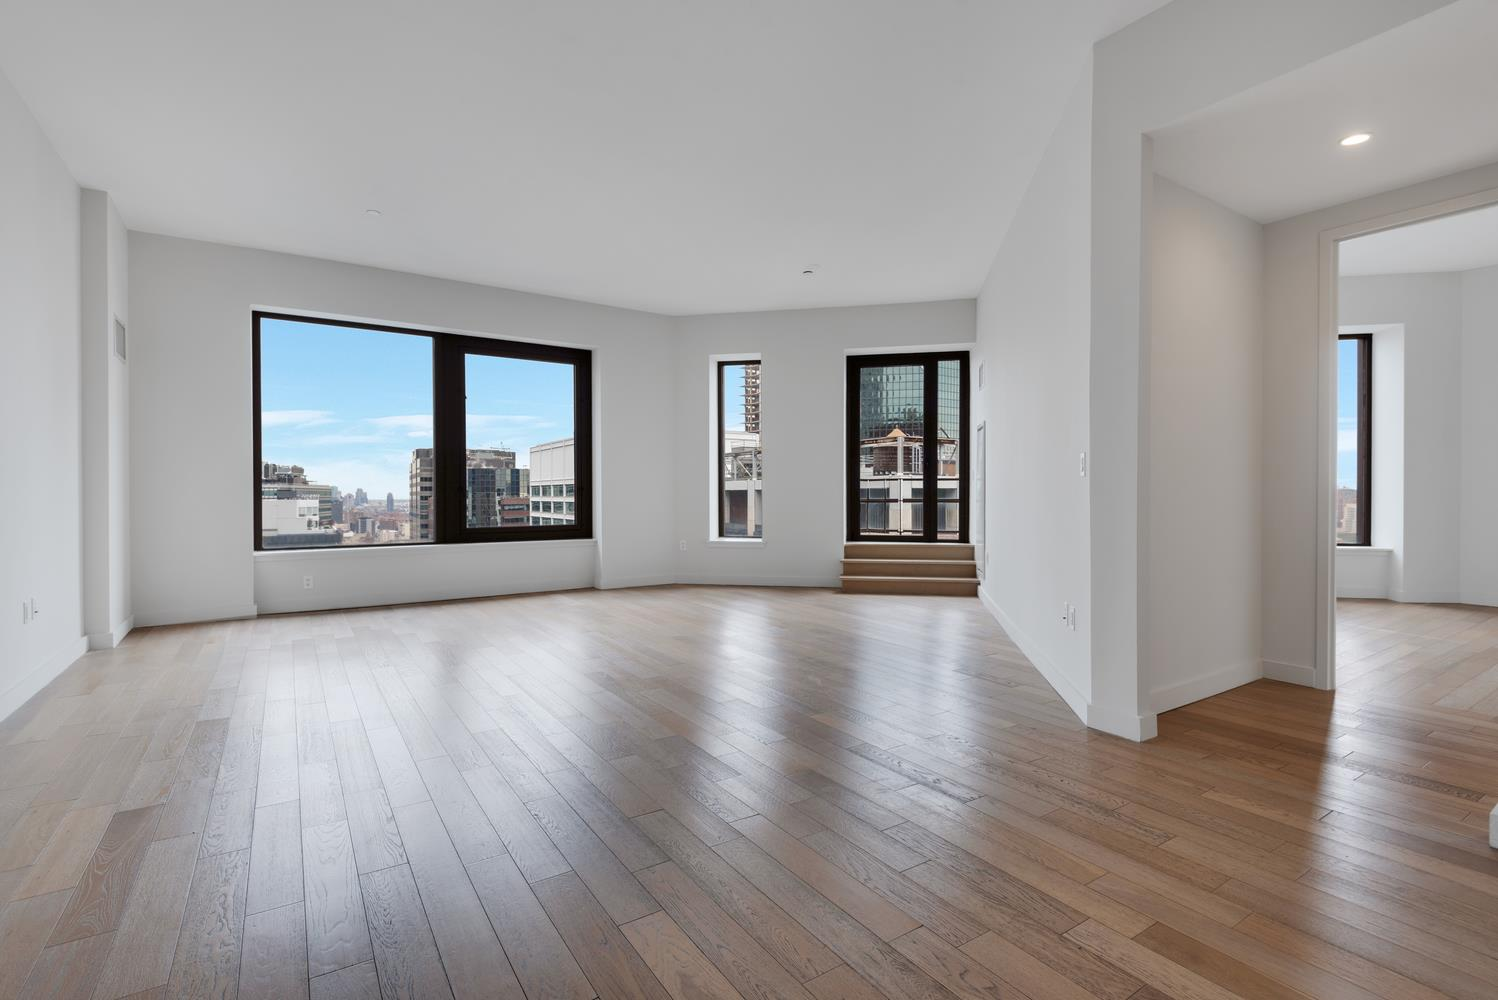 This spectacular 3 bedroom / 3 bathroom corner unit with alcove home office and 118 SQ FT private terrace offers walls of windows and unobstructed Northeastern views high above the New York skyline.  Featuring lofted ceilings, in-unit washer/dryer, double sink master bathroom vanity, enormous walk-in closets, Caeserstone kitchen countertops, Boffi lacquer kitchen cabinetry, appliances by Sub-Zero, Liebherr, Bosch, Miele, Electrolux and Sharp, your new kitchen is a chef's dream.  Bathroom features include Botticino semi classic marble flooring and wide plank cerused oak flooring throughout the apartment exemplify the top of the line finishes you can expect in this exquisite apartment.Additional concierge services include room service, catering, housekeeping, on-site parking and valet laundry.Contact us for a private showing of this one of a kind gem!